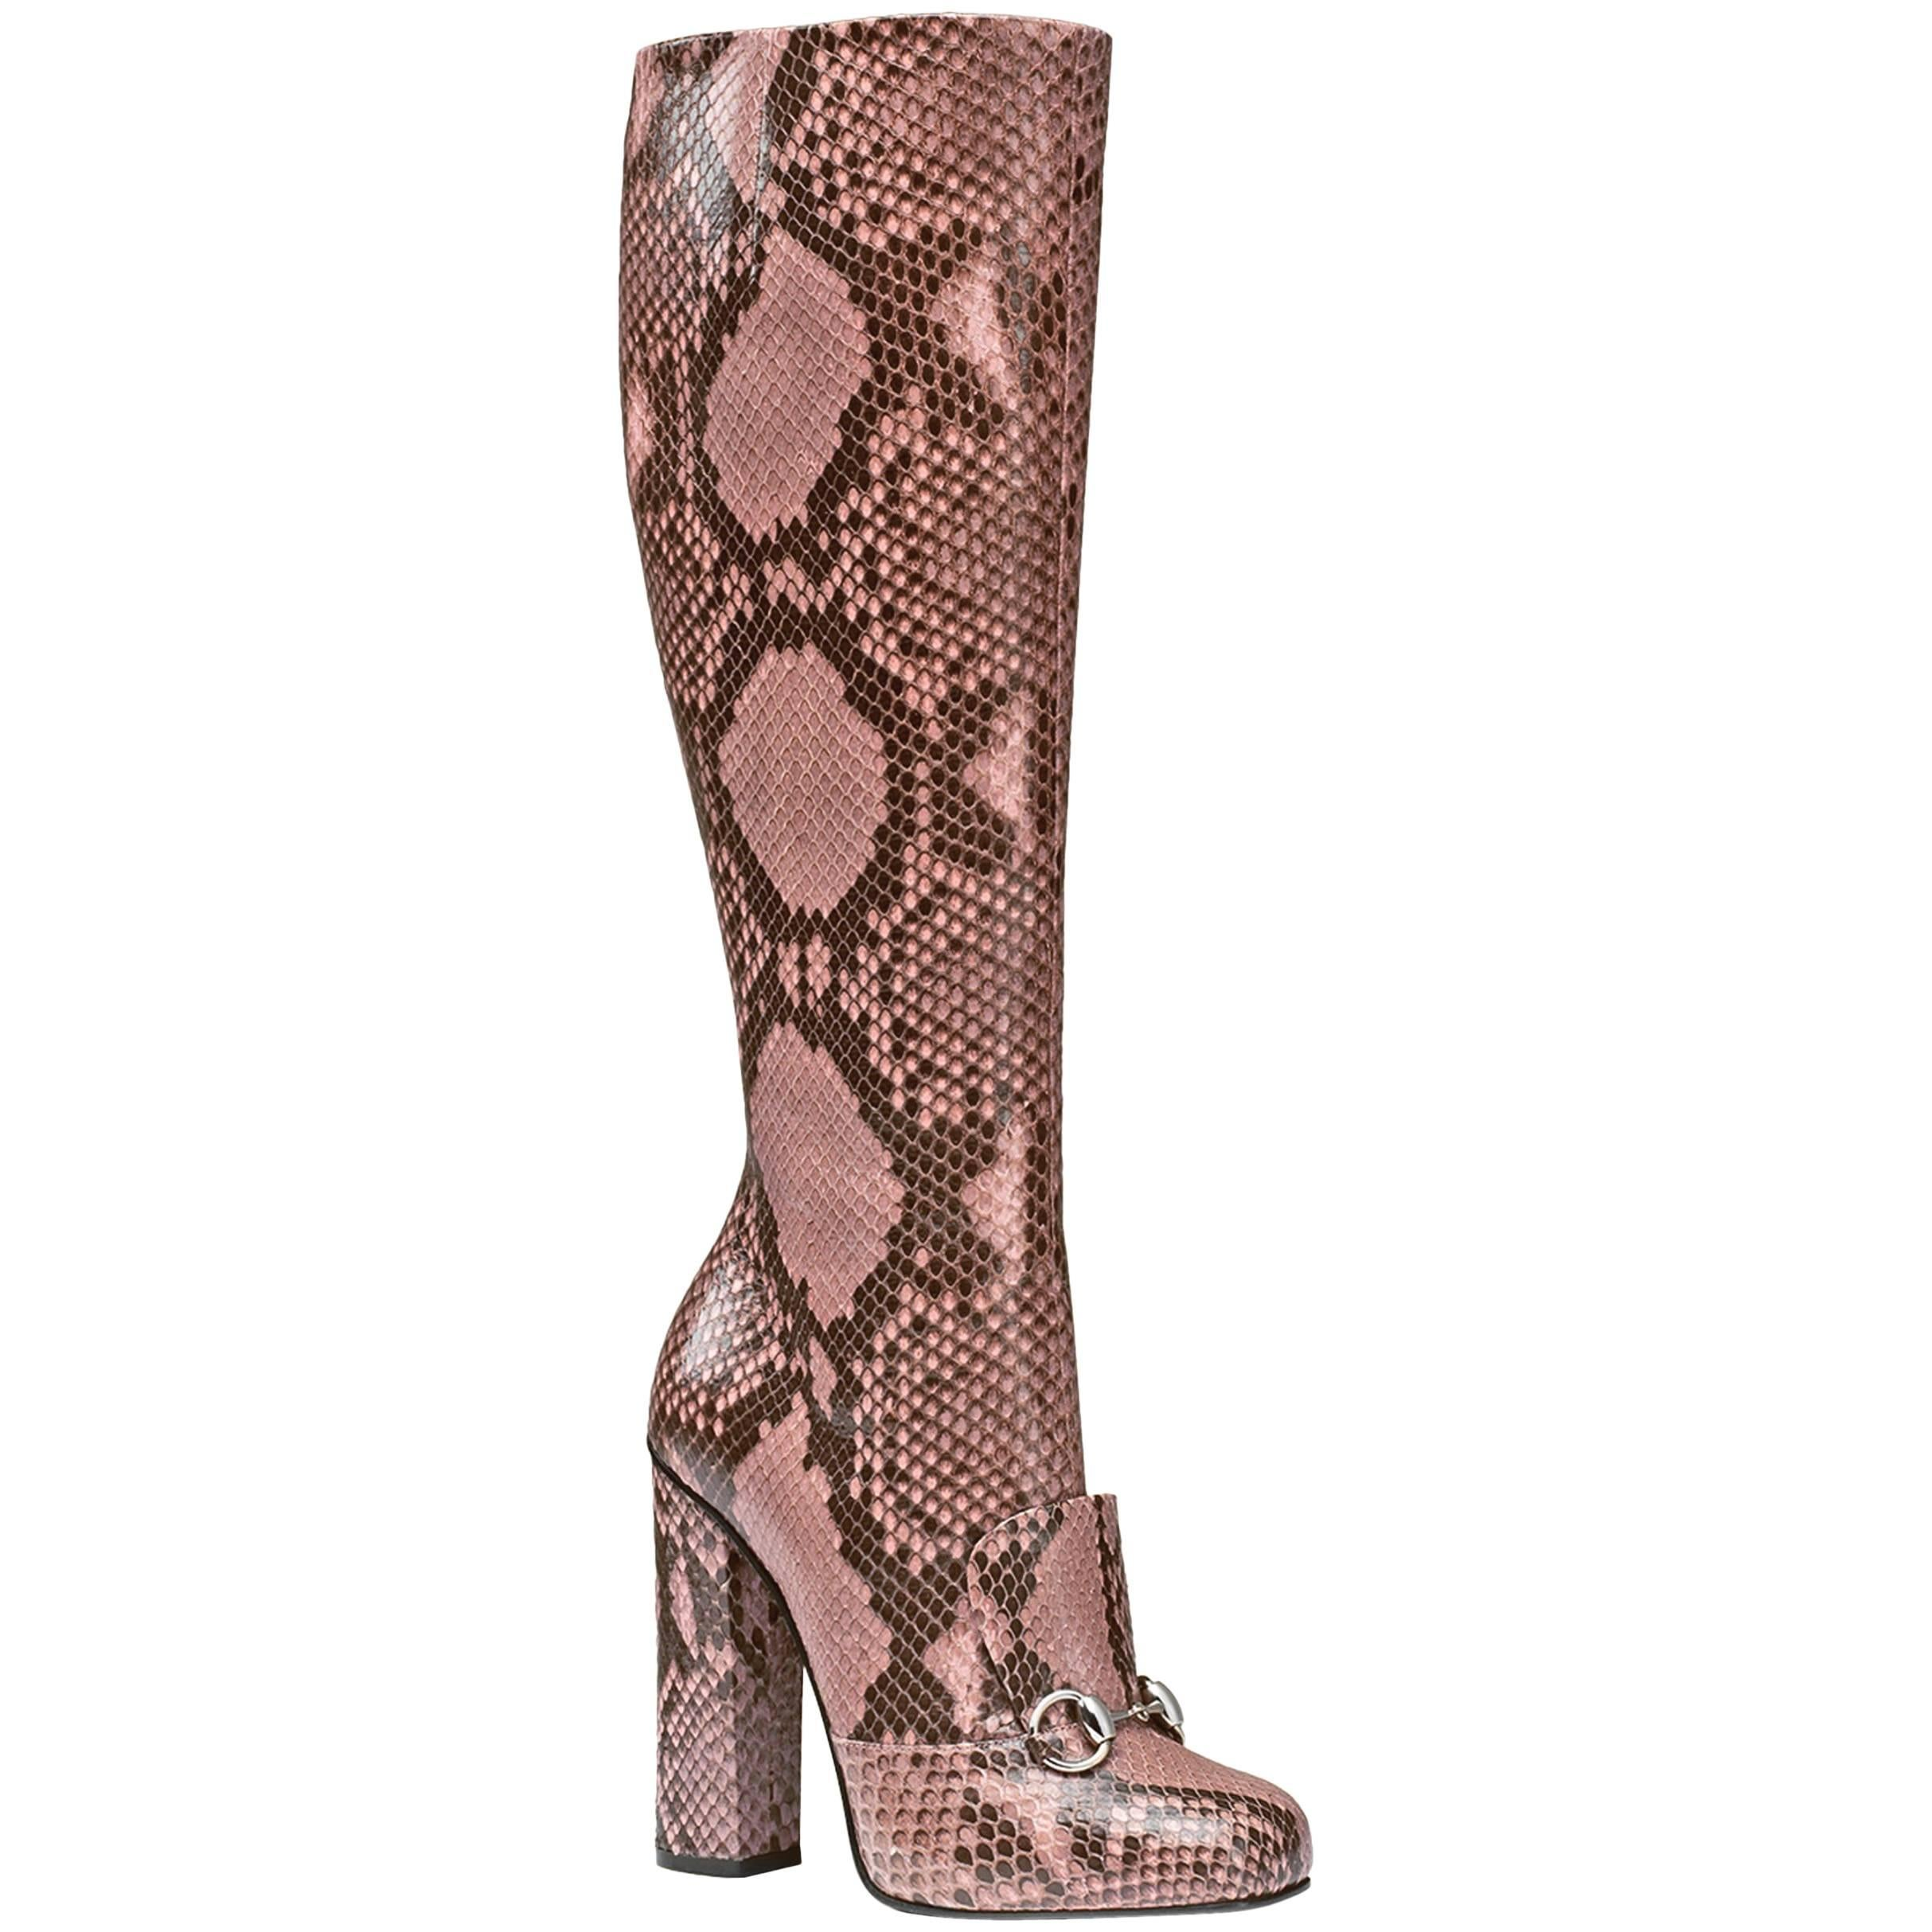 New GUCCI Campaign Python Horsebit Knee High Boots Pink 39.5 - US 10